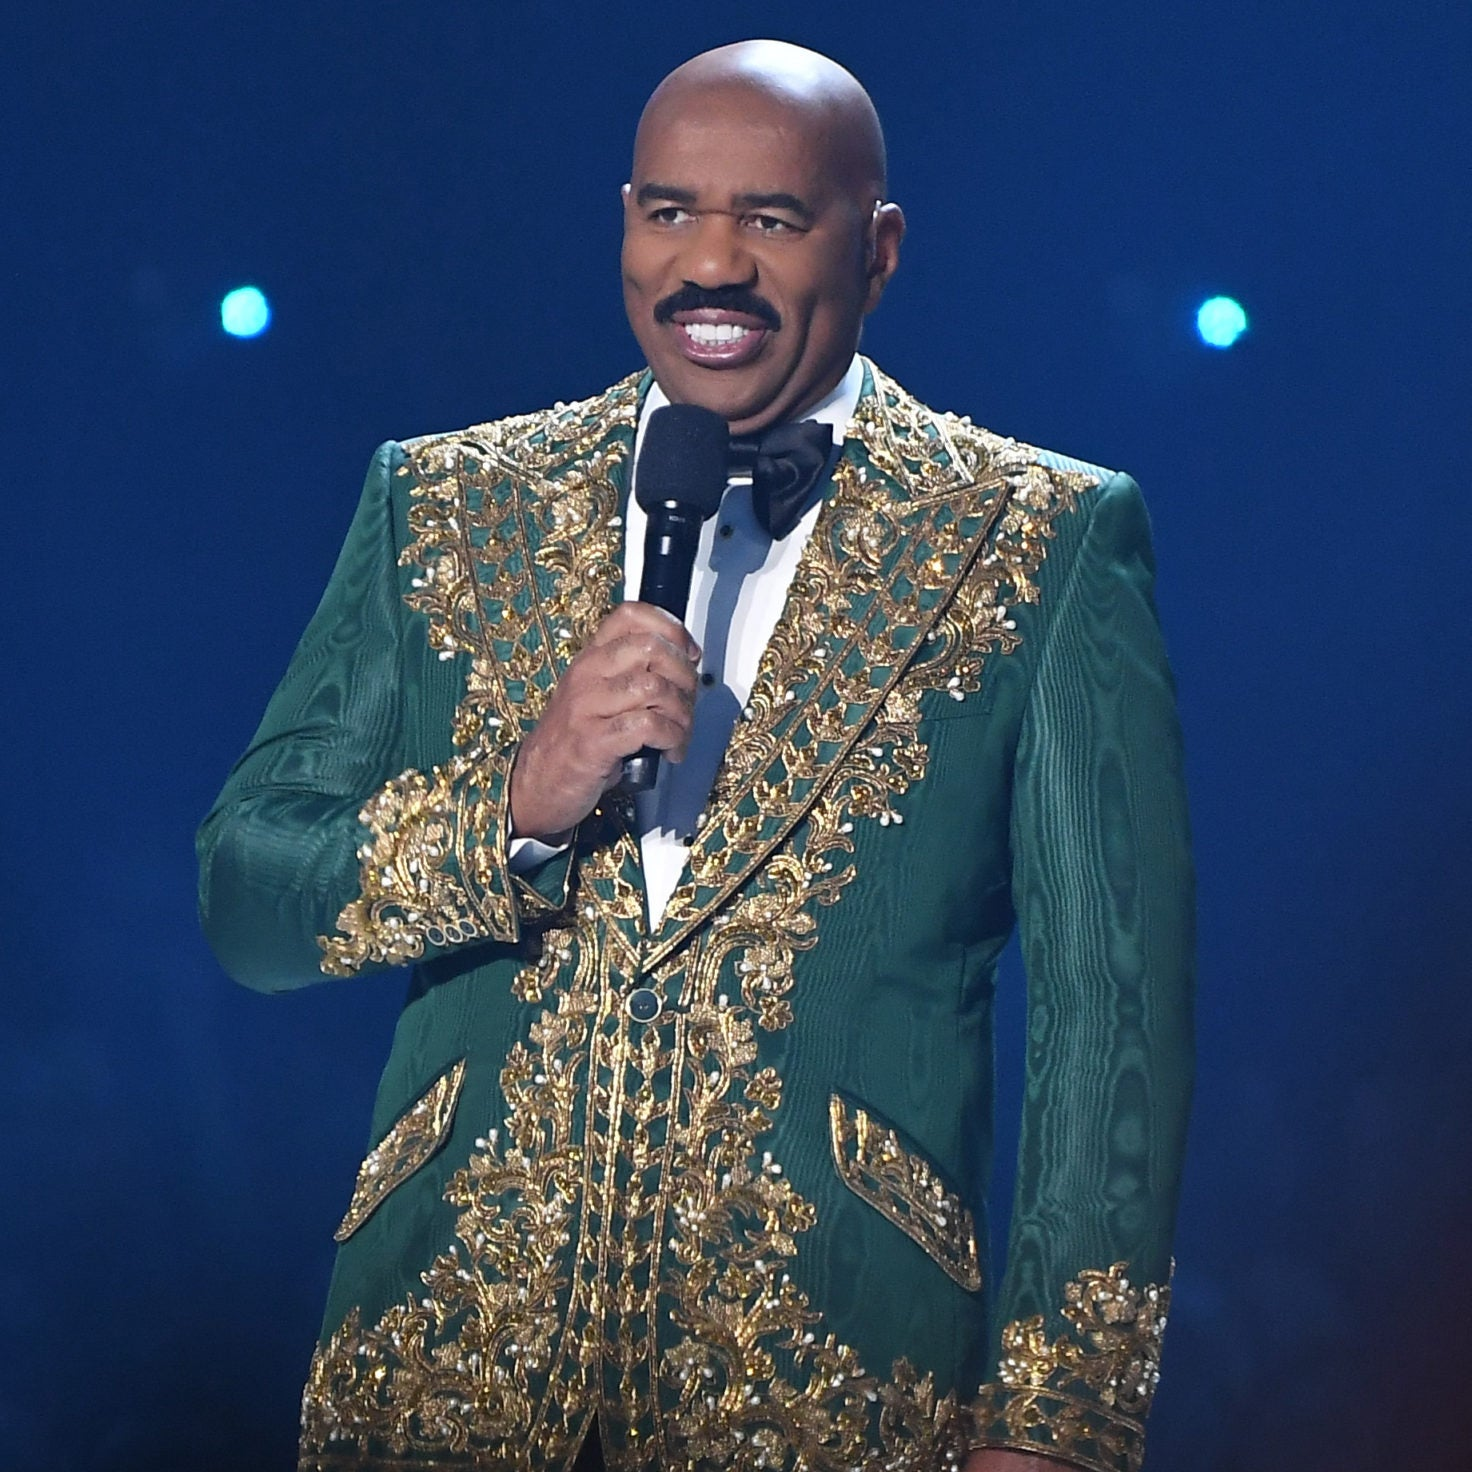 Steve Harvey Seemingly Mixes Up Names Of Miss Universe Contestants Again: 'Quit Doing This To Me'